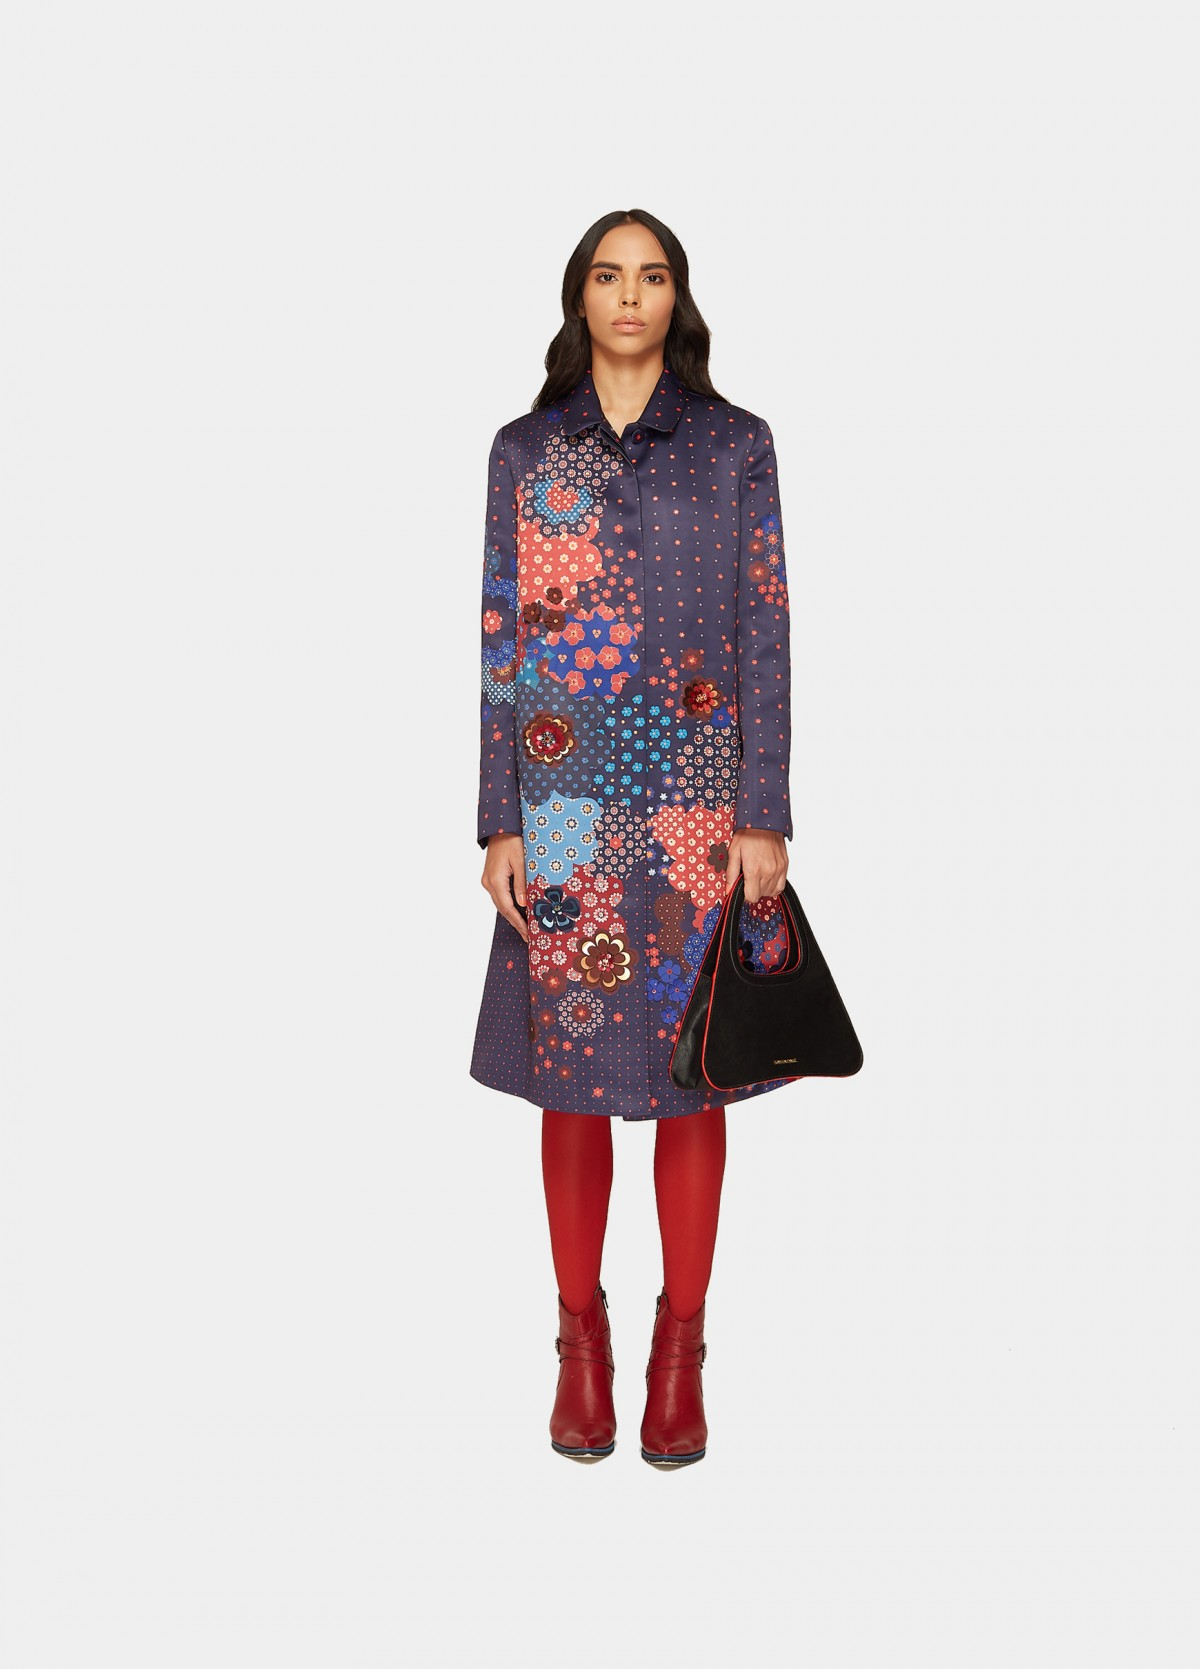 The Valley Of Flowers Jacket